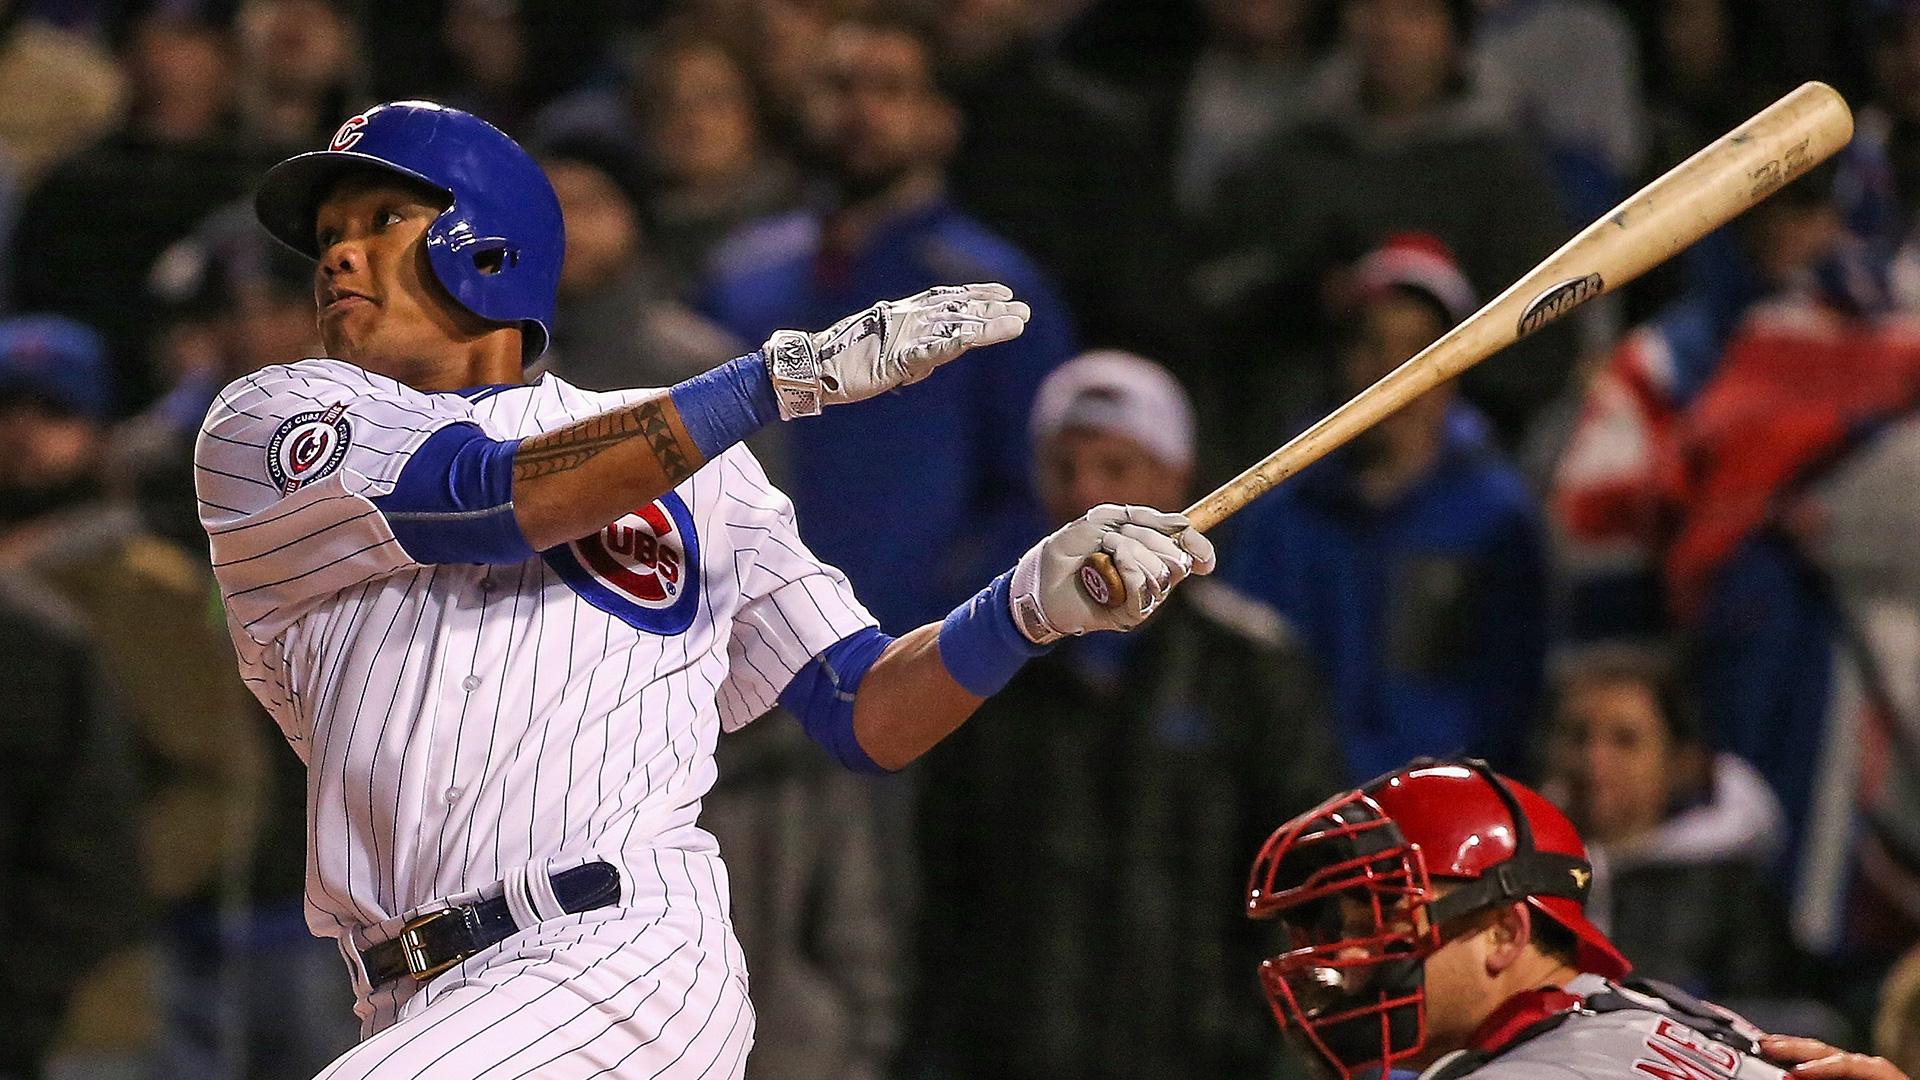 1920x1080 - Addison Russell Wallpapers 31